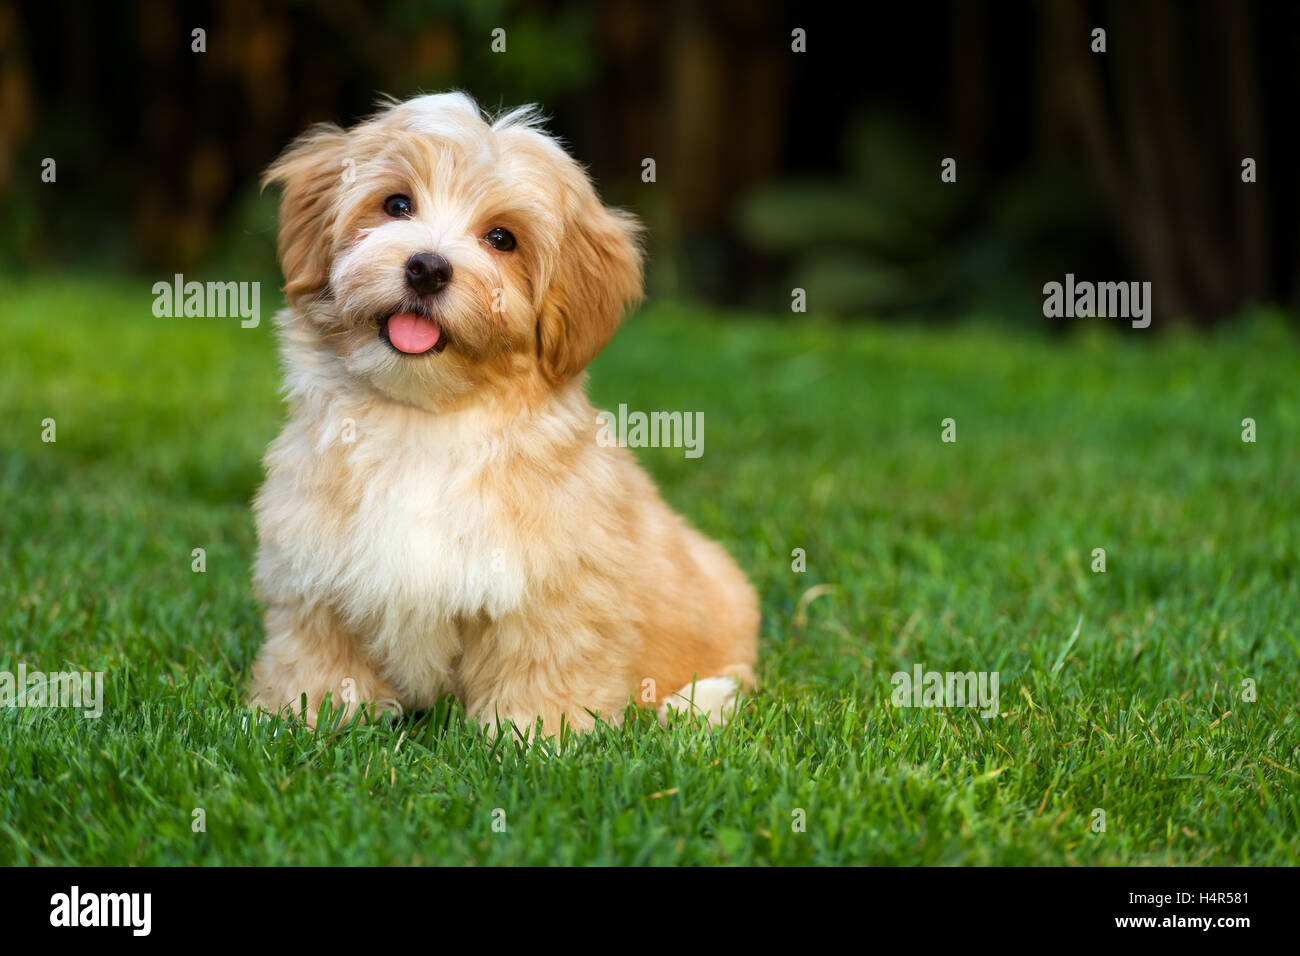 gl ckliche kleine orange havaneser welpe hund sitzt auf dem rasen stockfoto bild 123440241 alamy. Black Bedroom Furniture Sets. Home Design Ideas